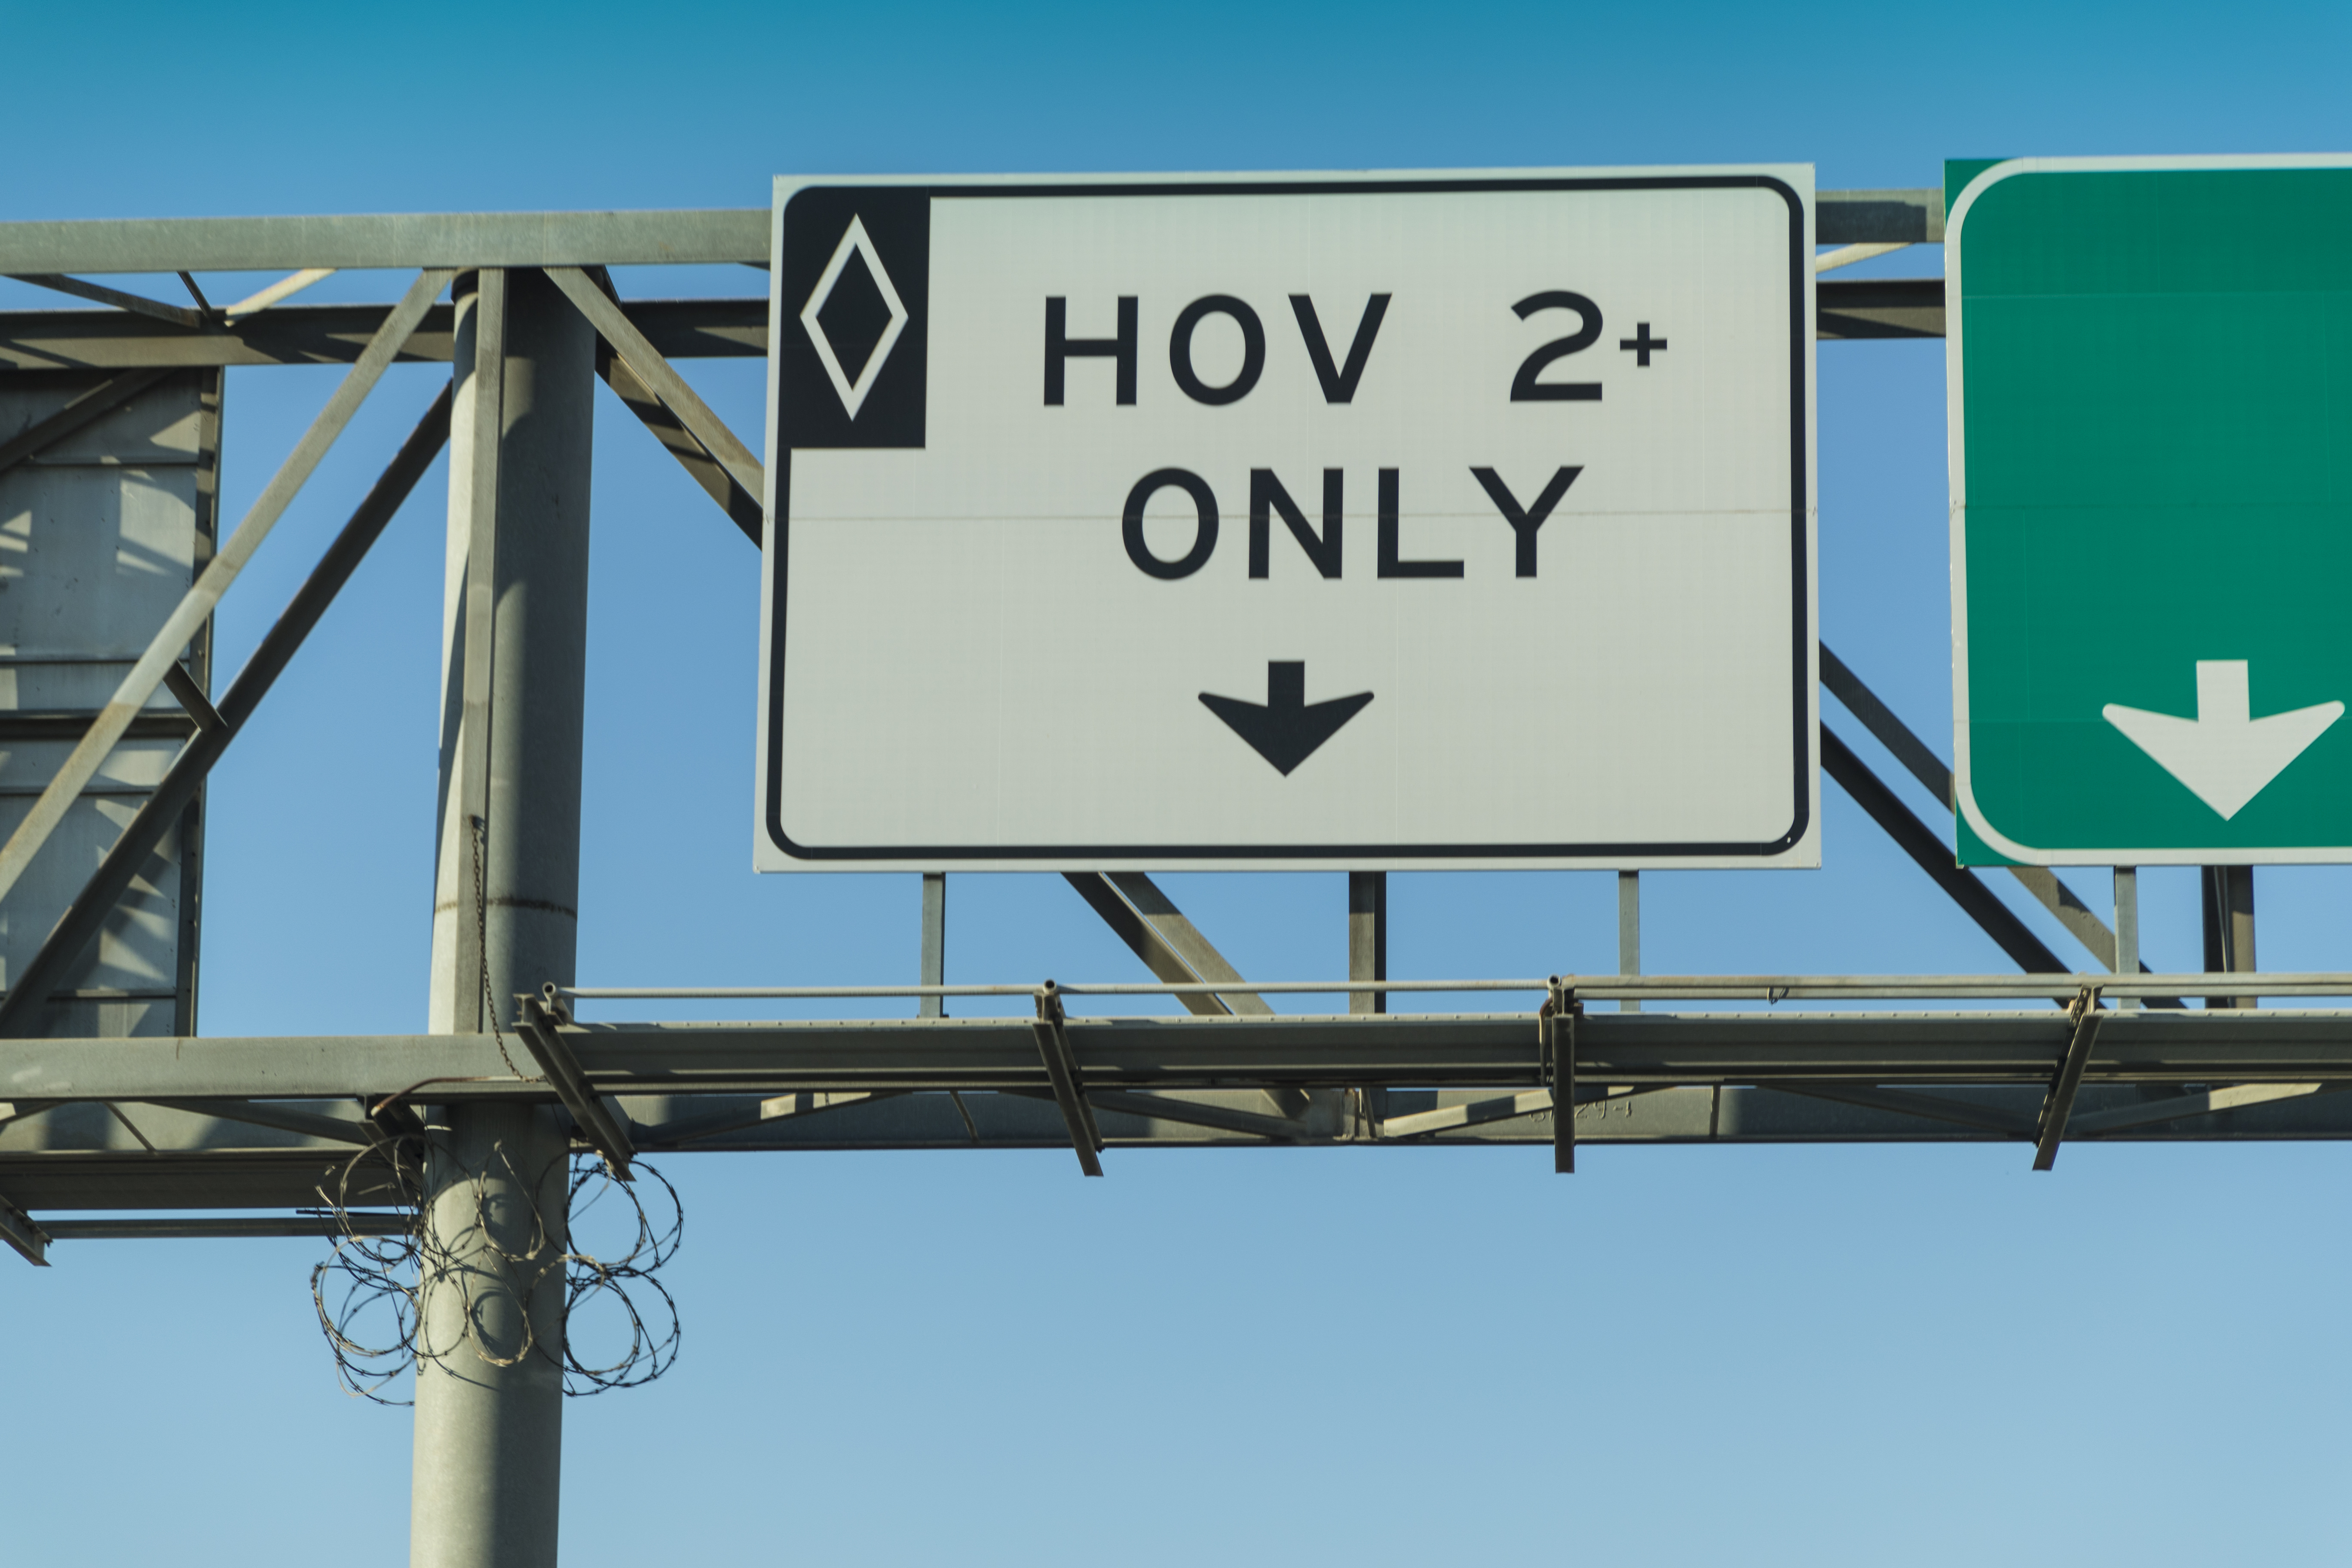 Road Rules 101: Can I use the HOV lane to pass if I'm not in a carpool?